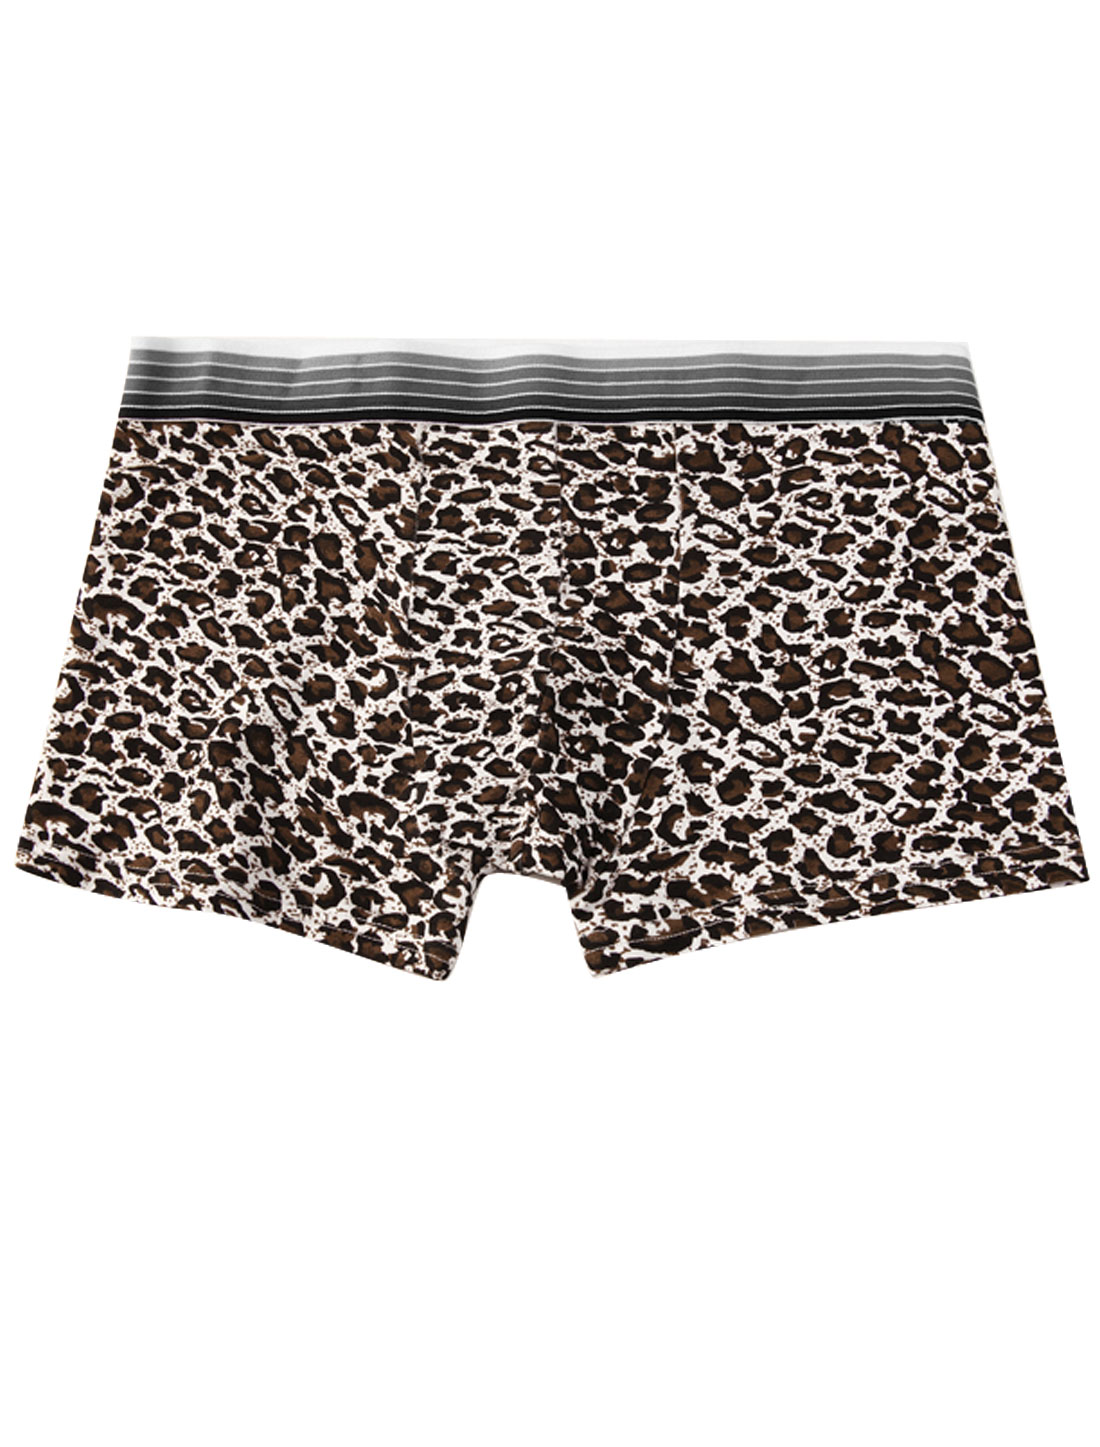 Men Elastic Waistband Leopard Print Fashion Boxer Briefs Black Brown W30